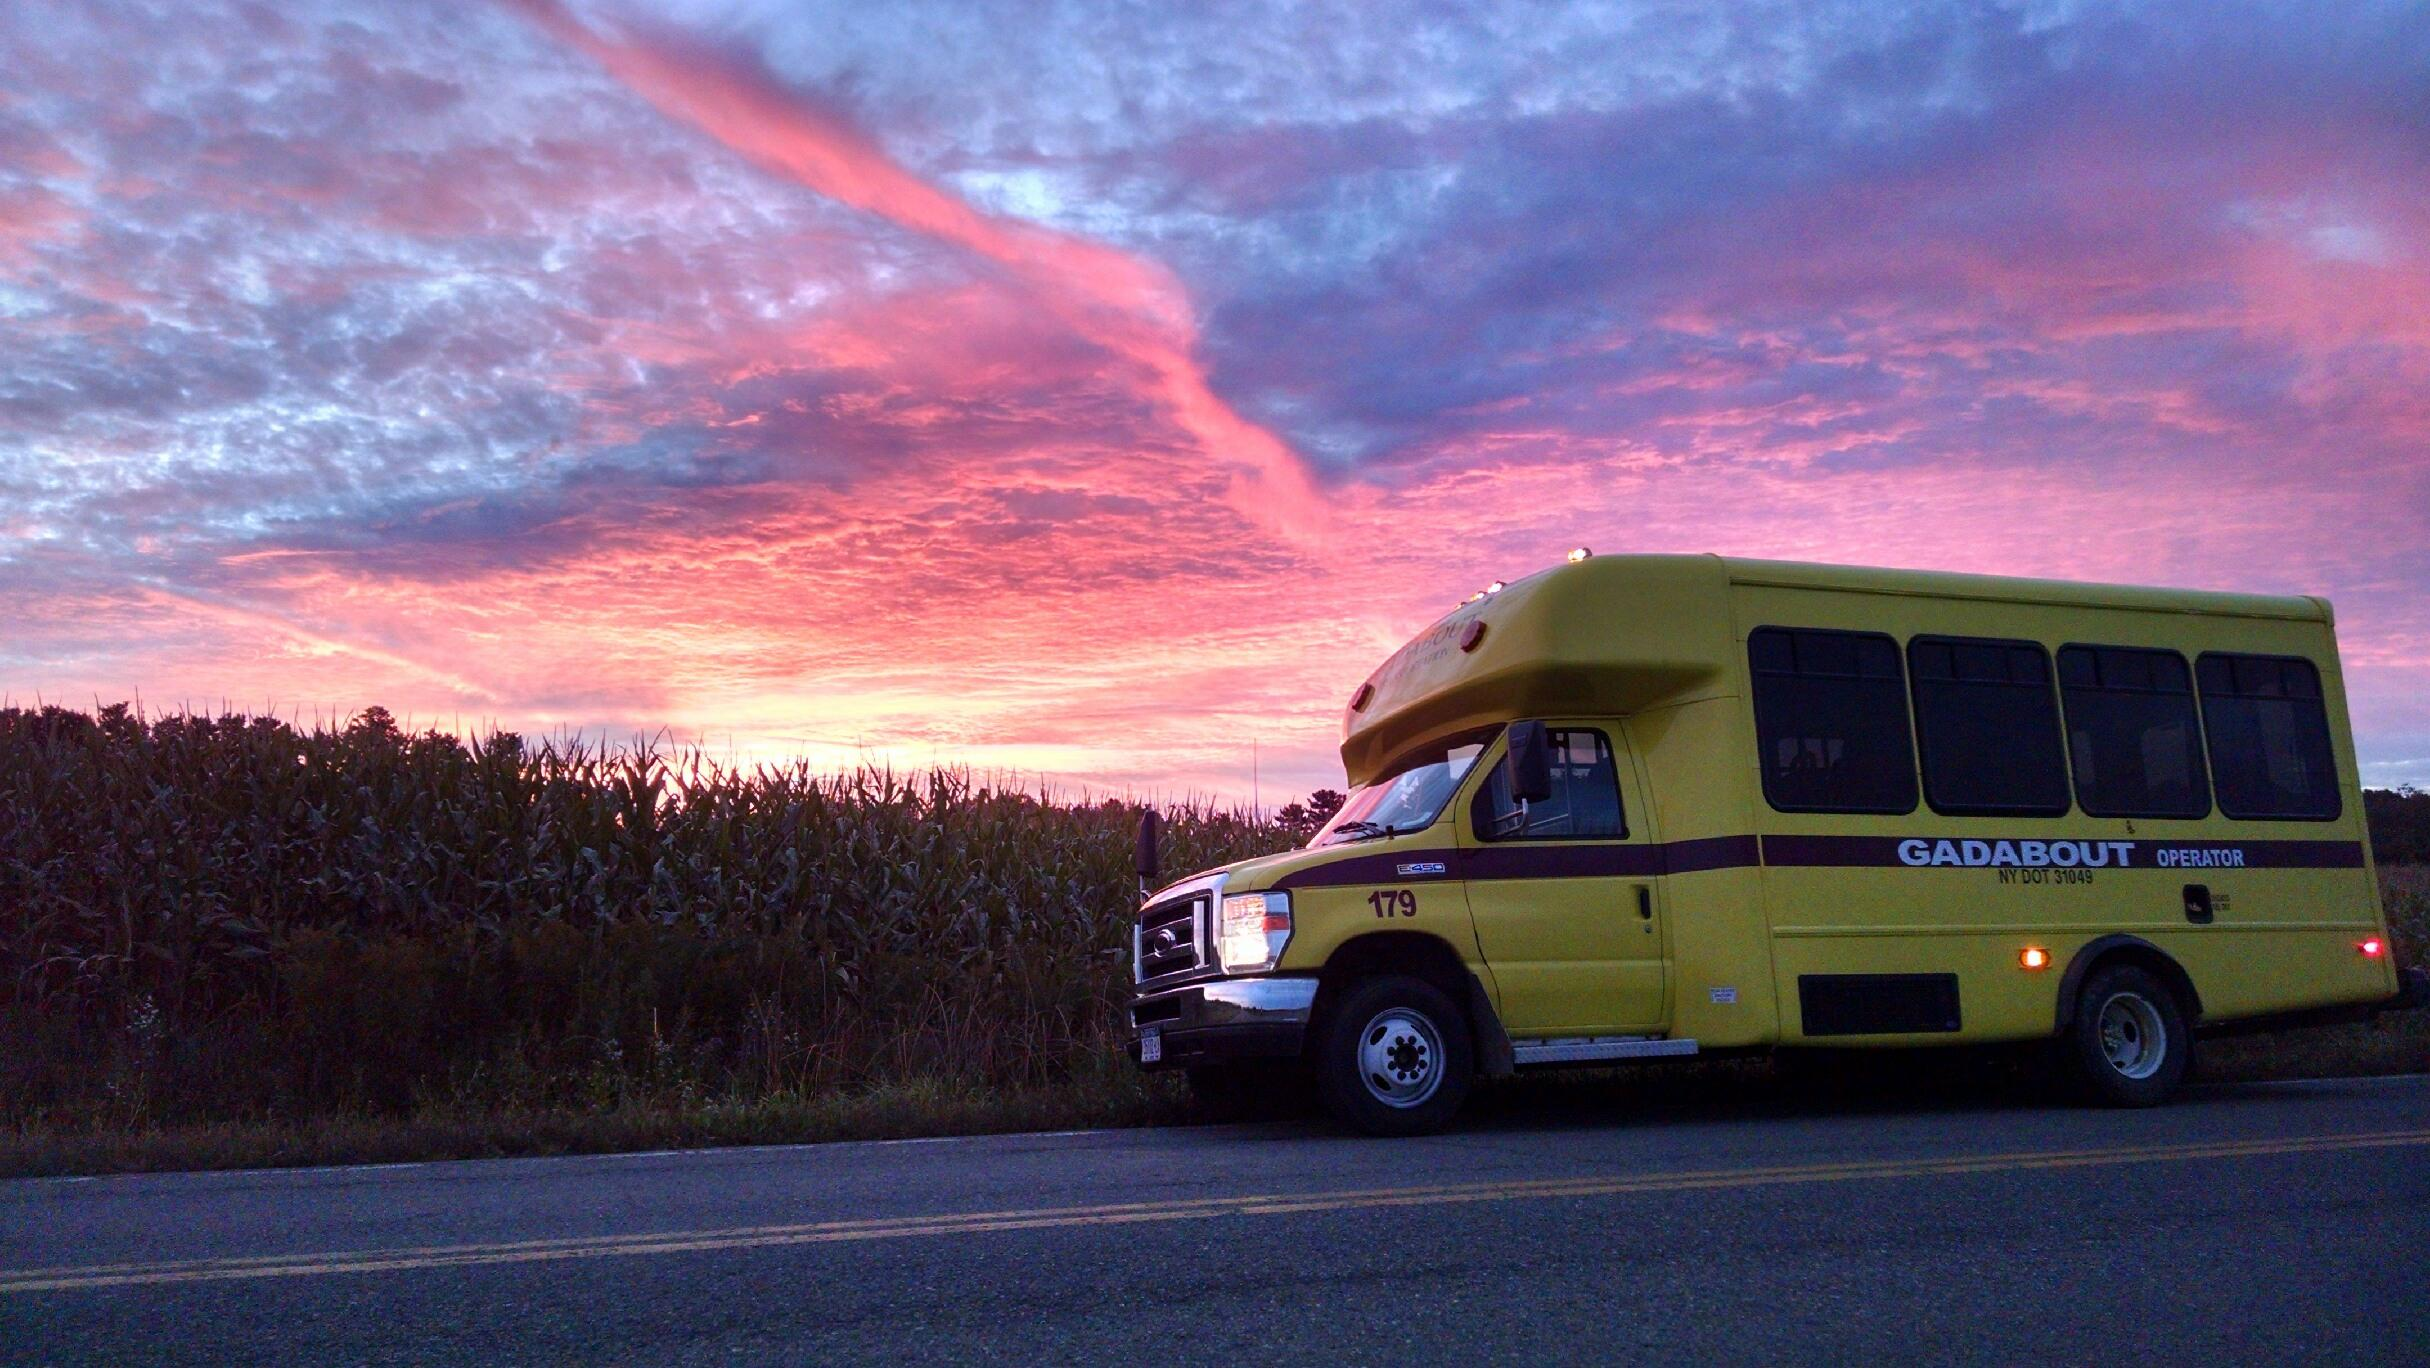 gadabout-bus-at-sunrise